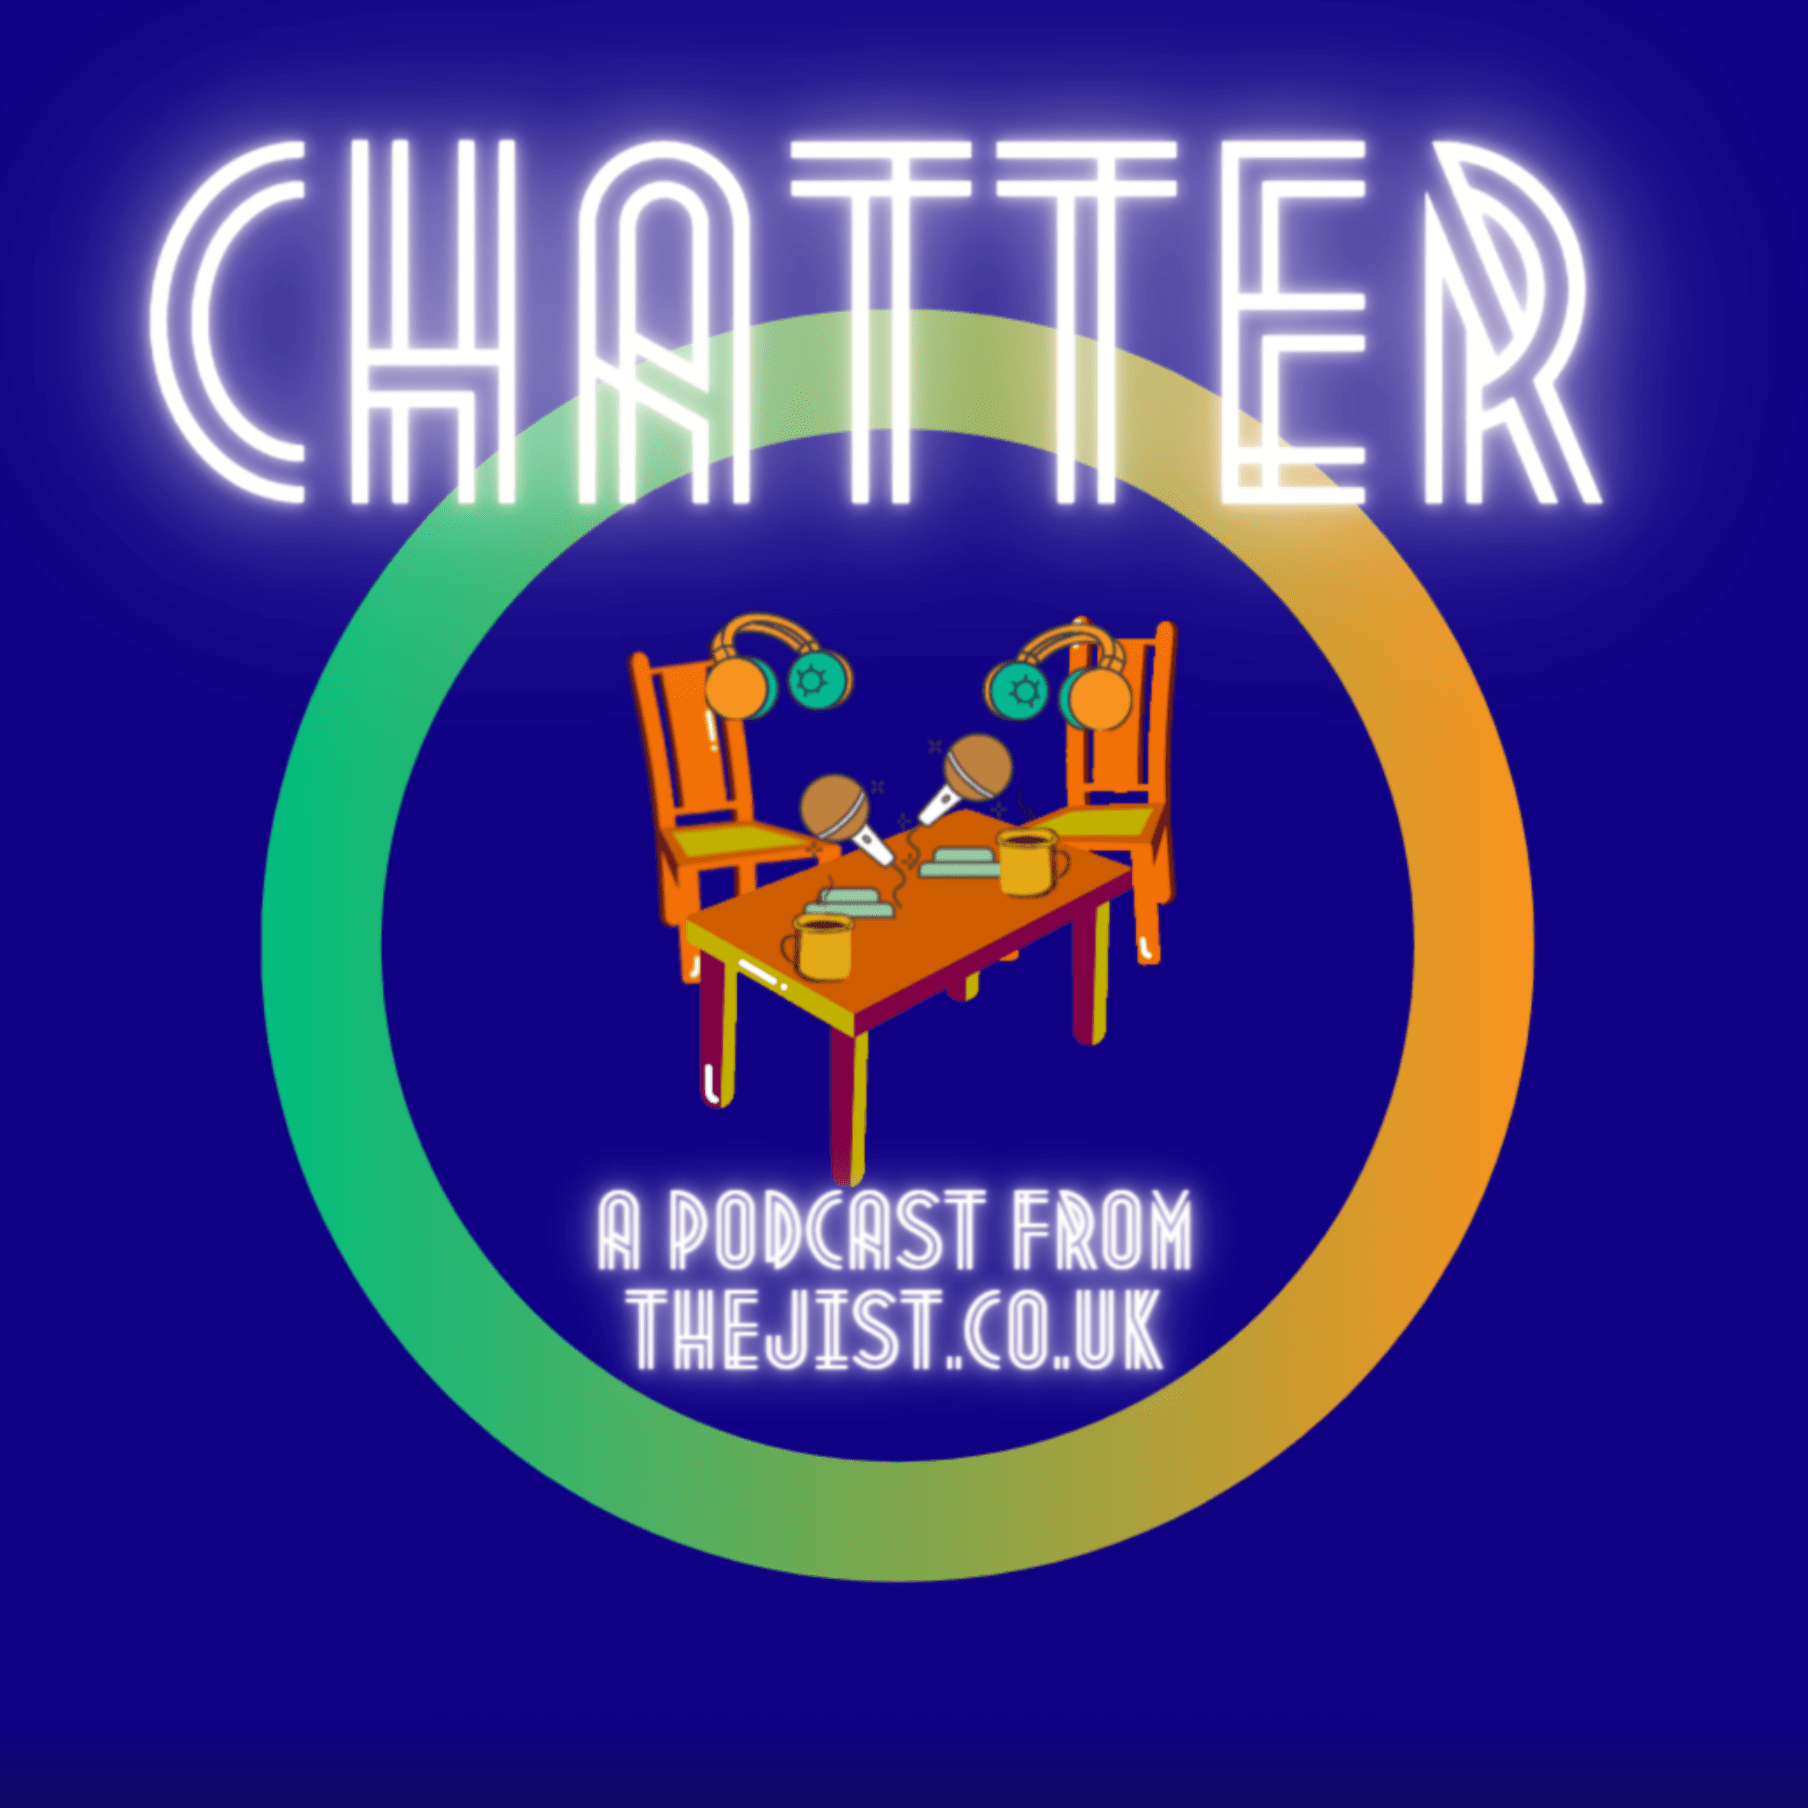 Chatter #95 – Dr Erkin Sidick on the Uyghur Genocide and Authoritarian China